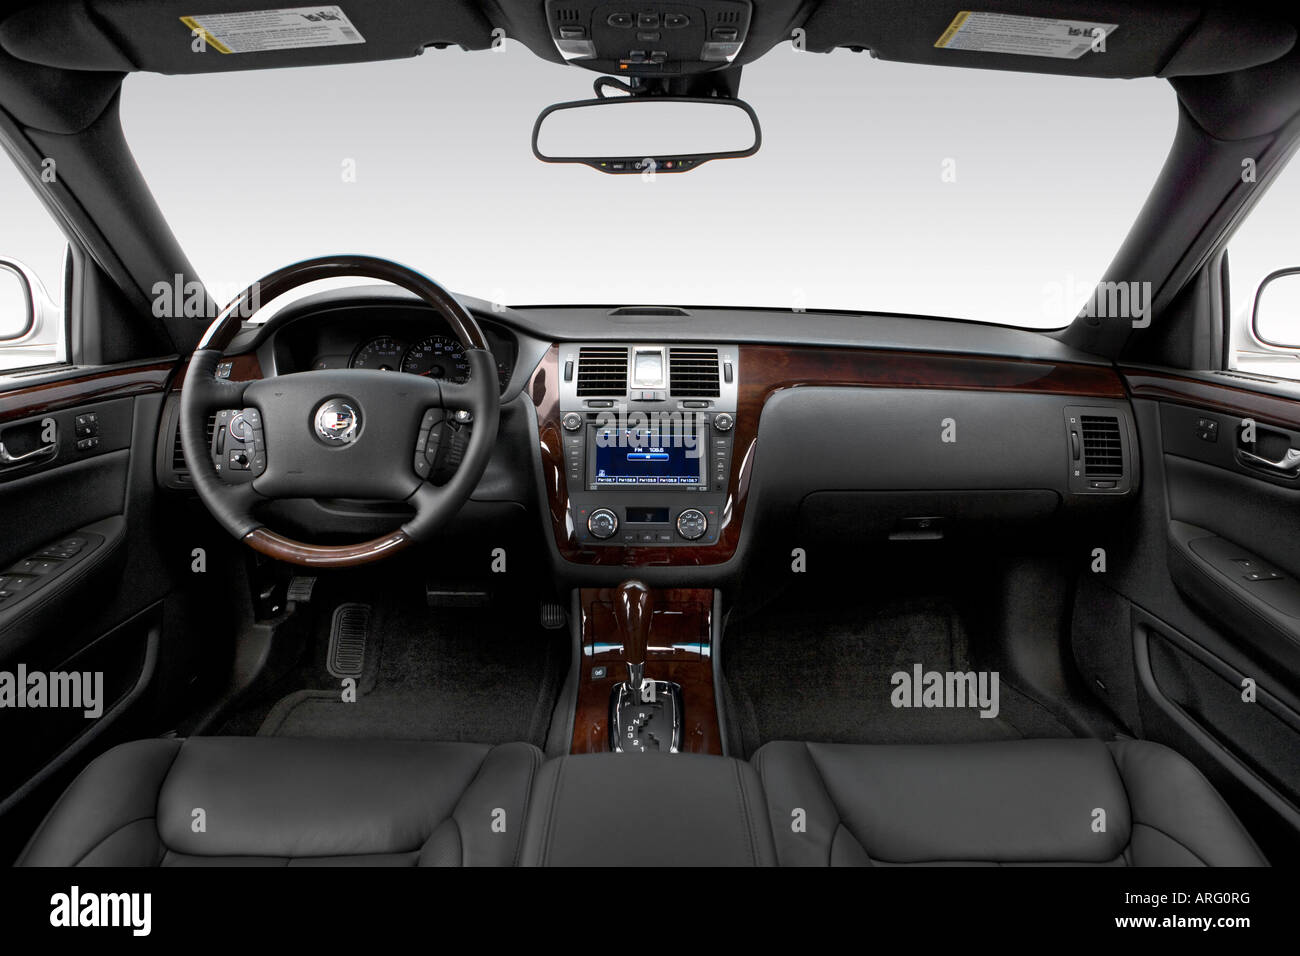 used in dts cadillac xlr tom vehicle vehiclesearchresults chevrolet photo search cars ks sale davis for parsons